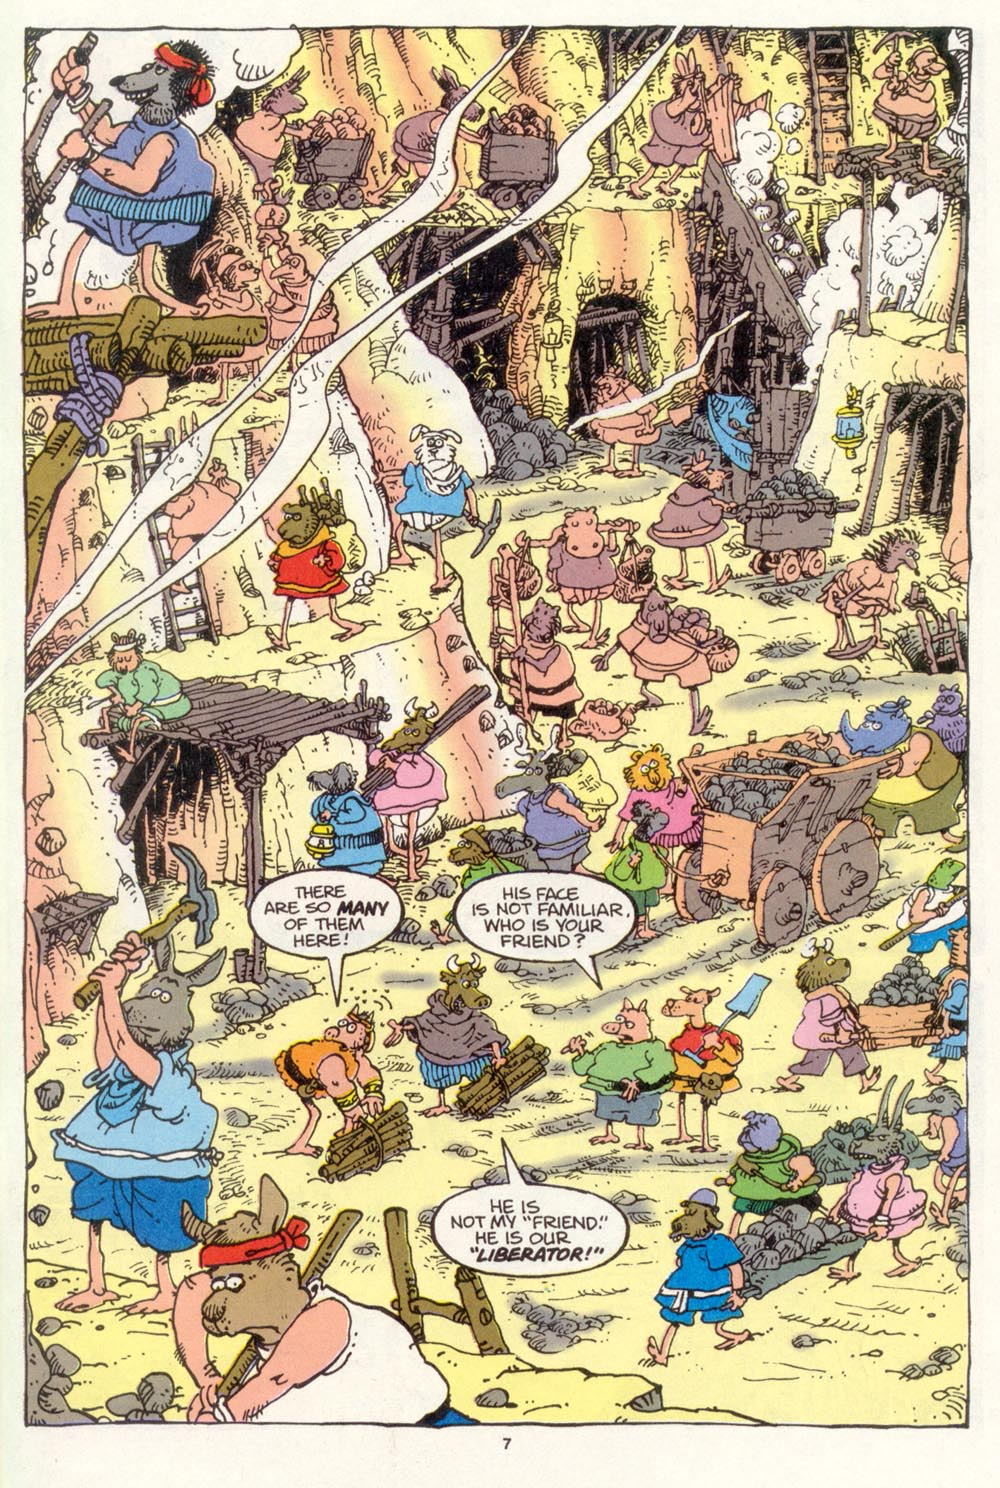 Read online Sergio Aragonés Groo the Wanderer comic -  Issue #105 - 9